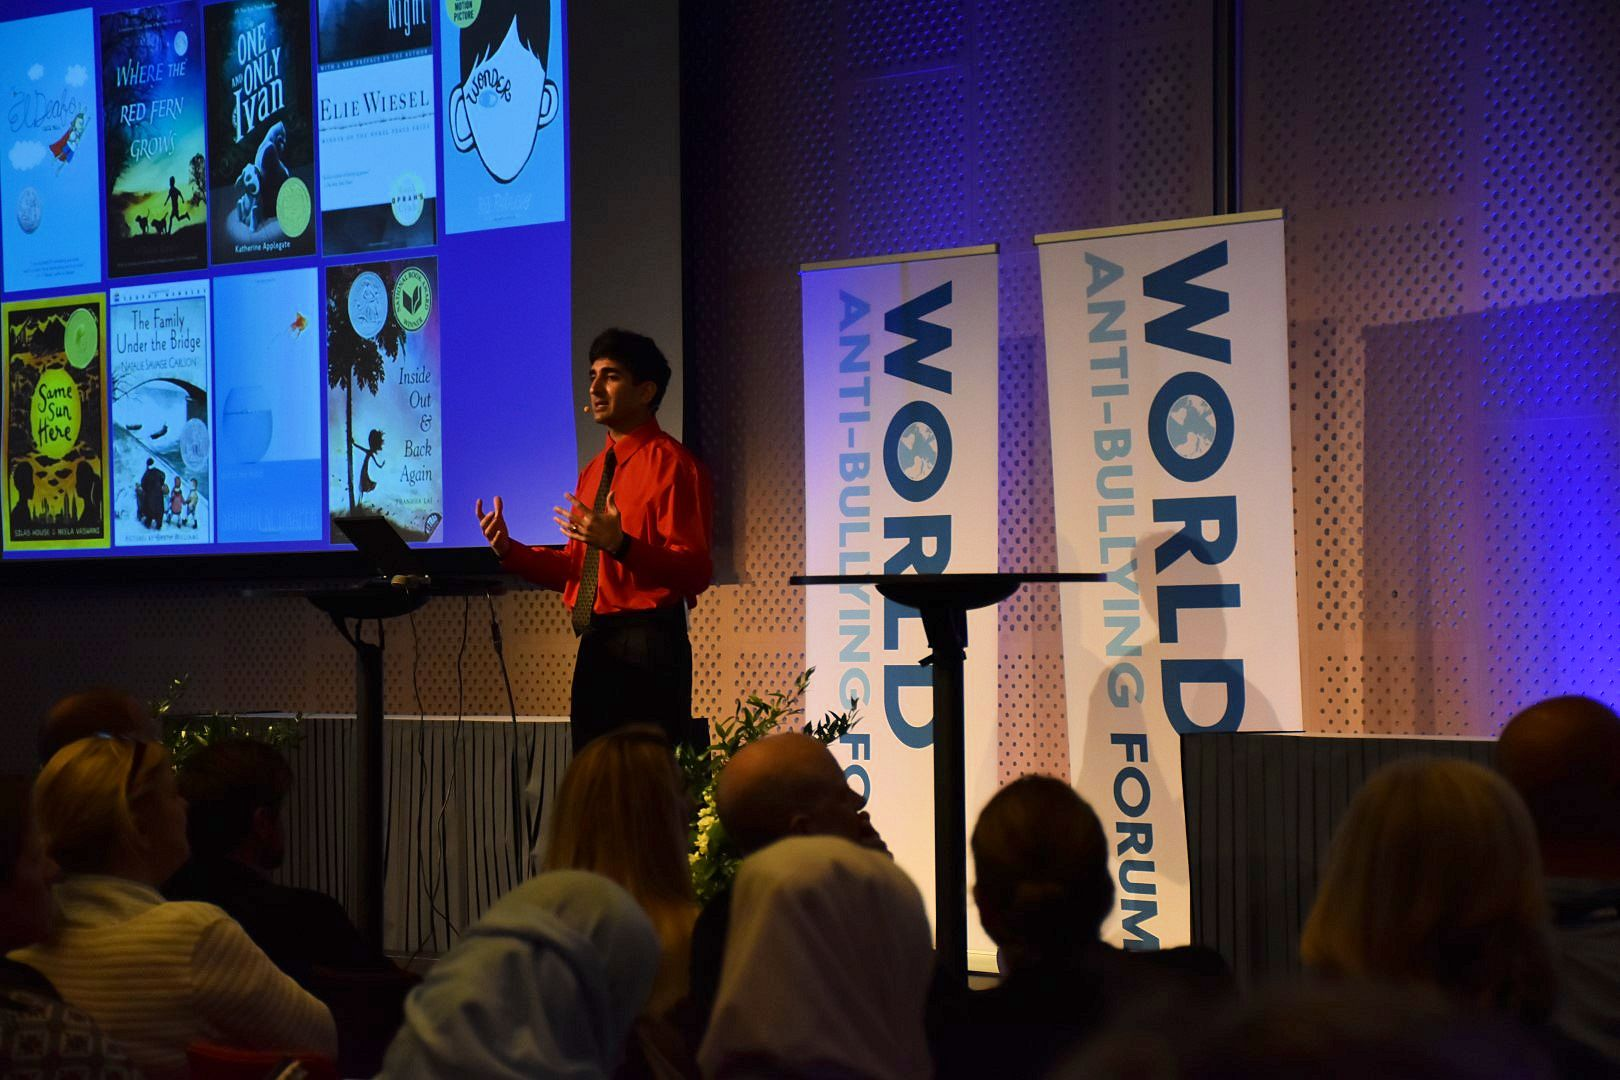 sameer hinduja cyberbullying sweden keynote 5